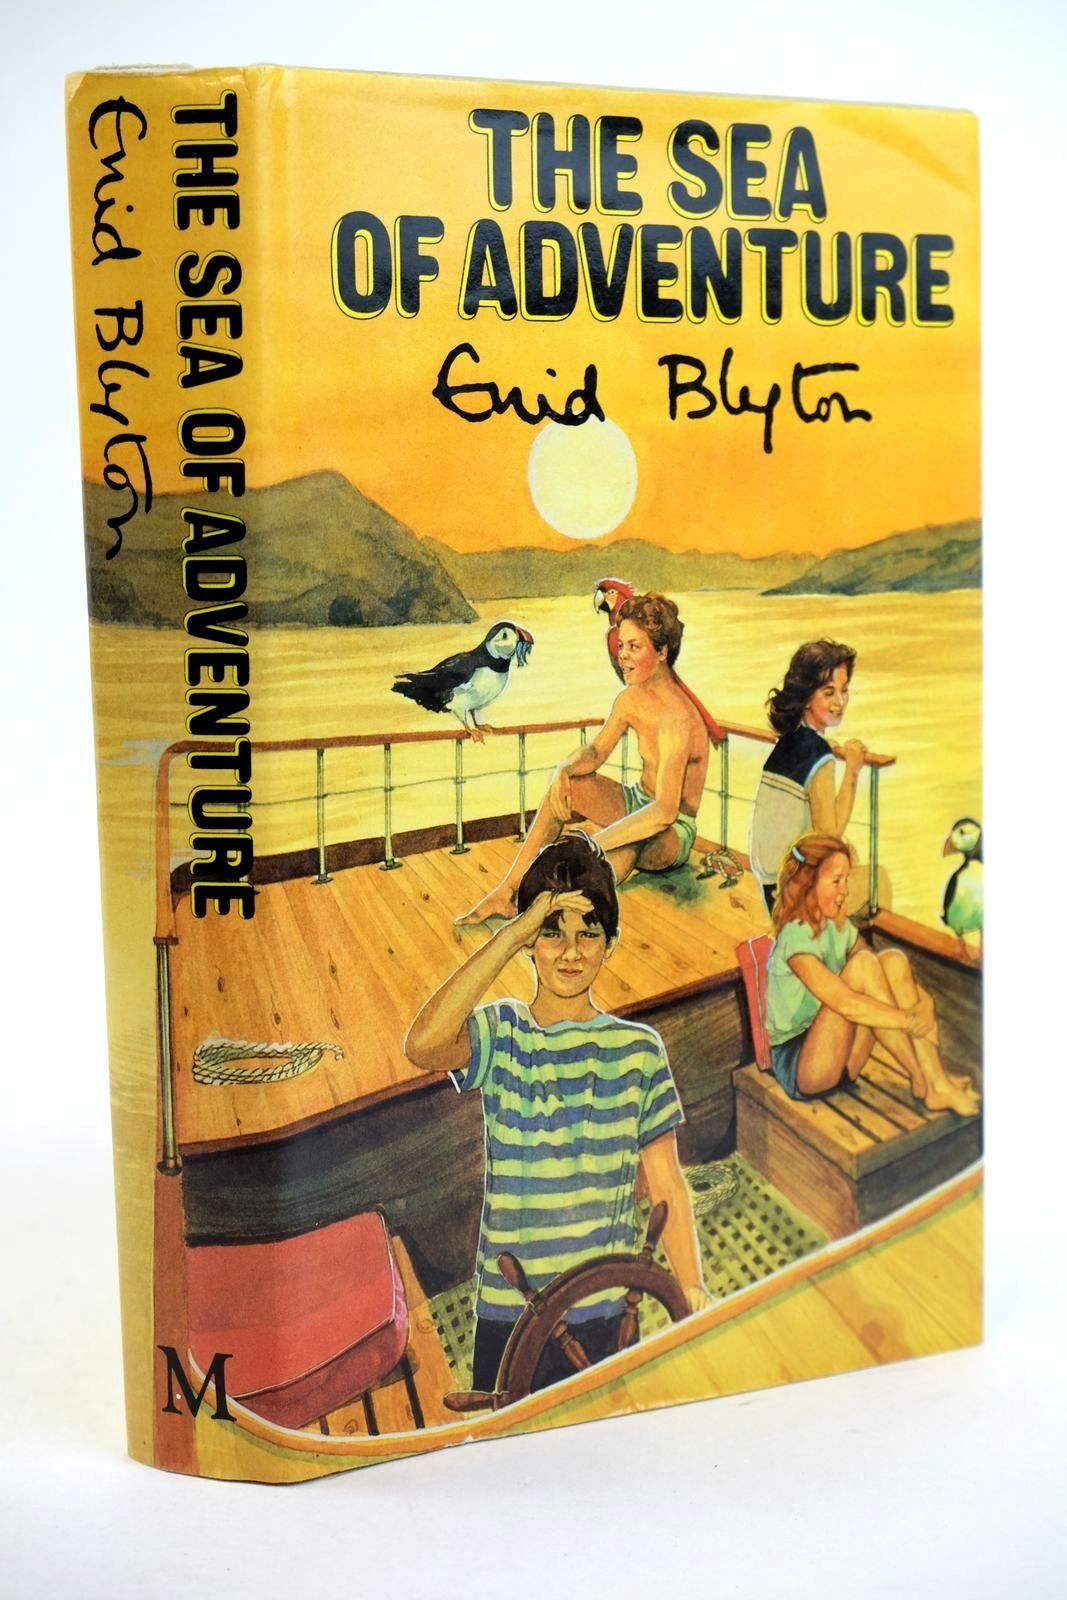 Photo of THE SEA OF ADVENTURE written by Blyton, Enid illustrated by Tresilian, Stuart published by Macmillan & Co. Ltd. (STOCK CODE: 1319114)  for sale by Stella & Rose's Books